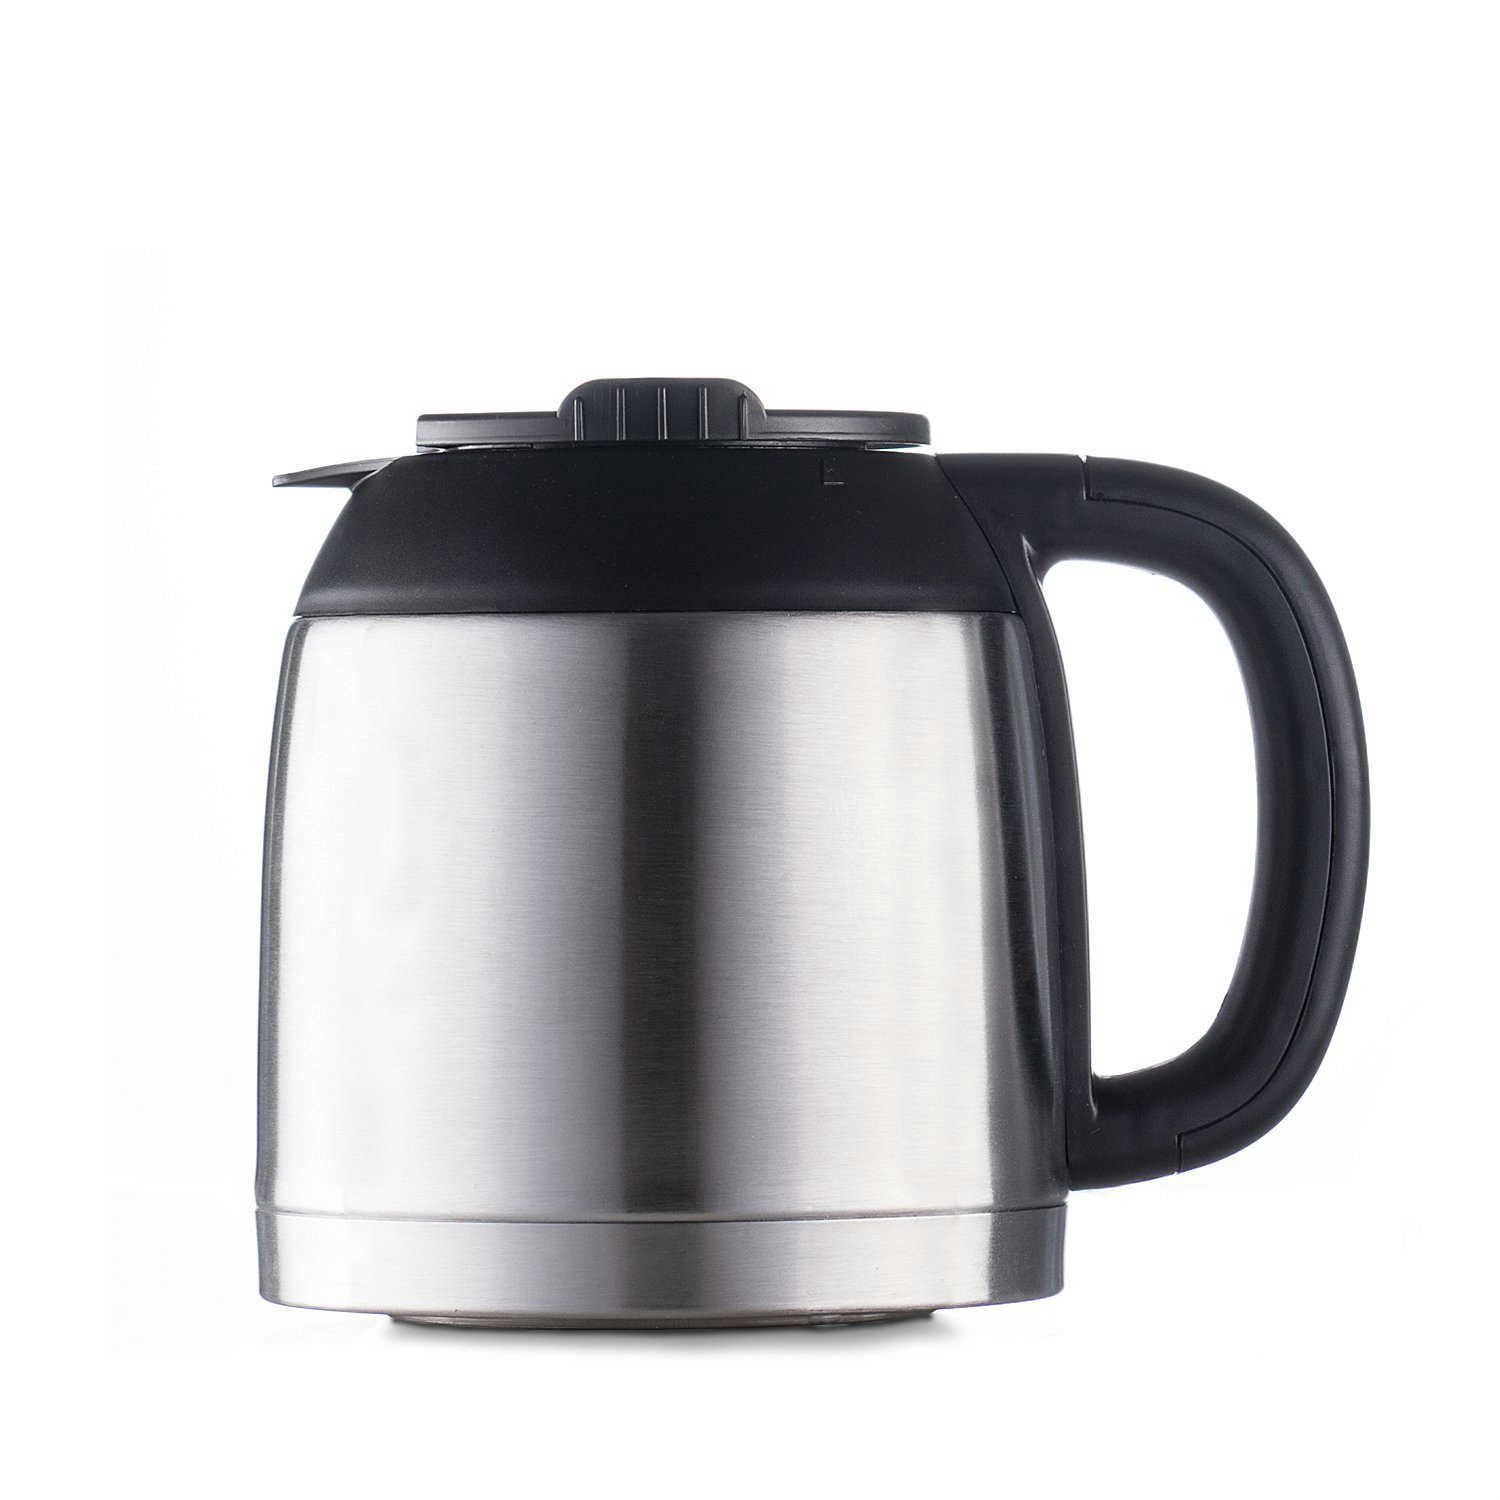 Programmable Coffee Maker With Reusable Filter : NEW Bella 10 Cup Thermal Programmable Coffee Maker Reusable Filter Basket eBay